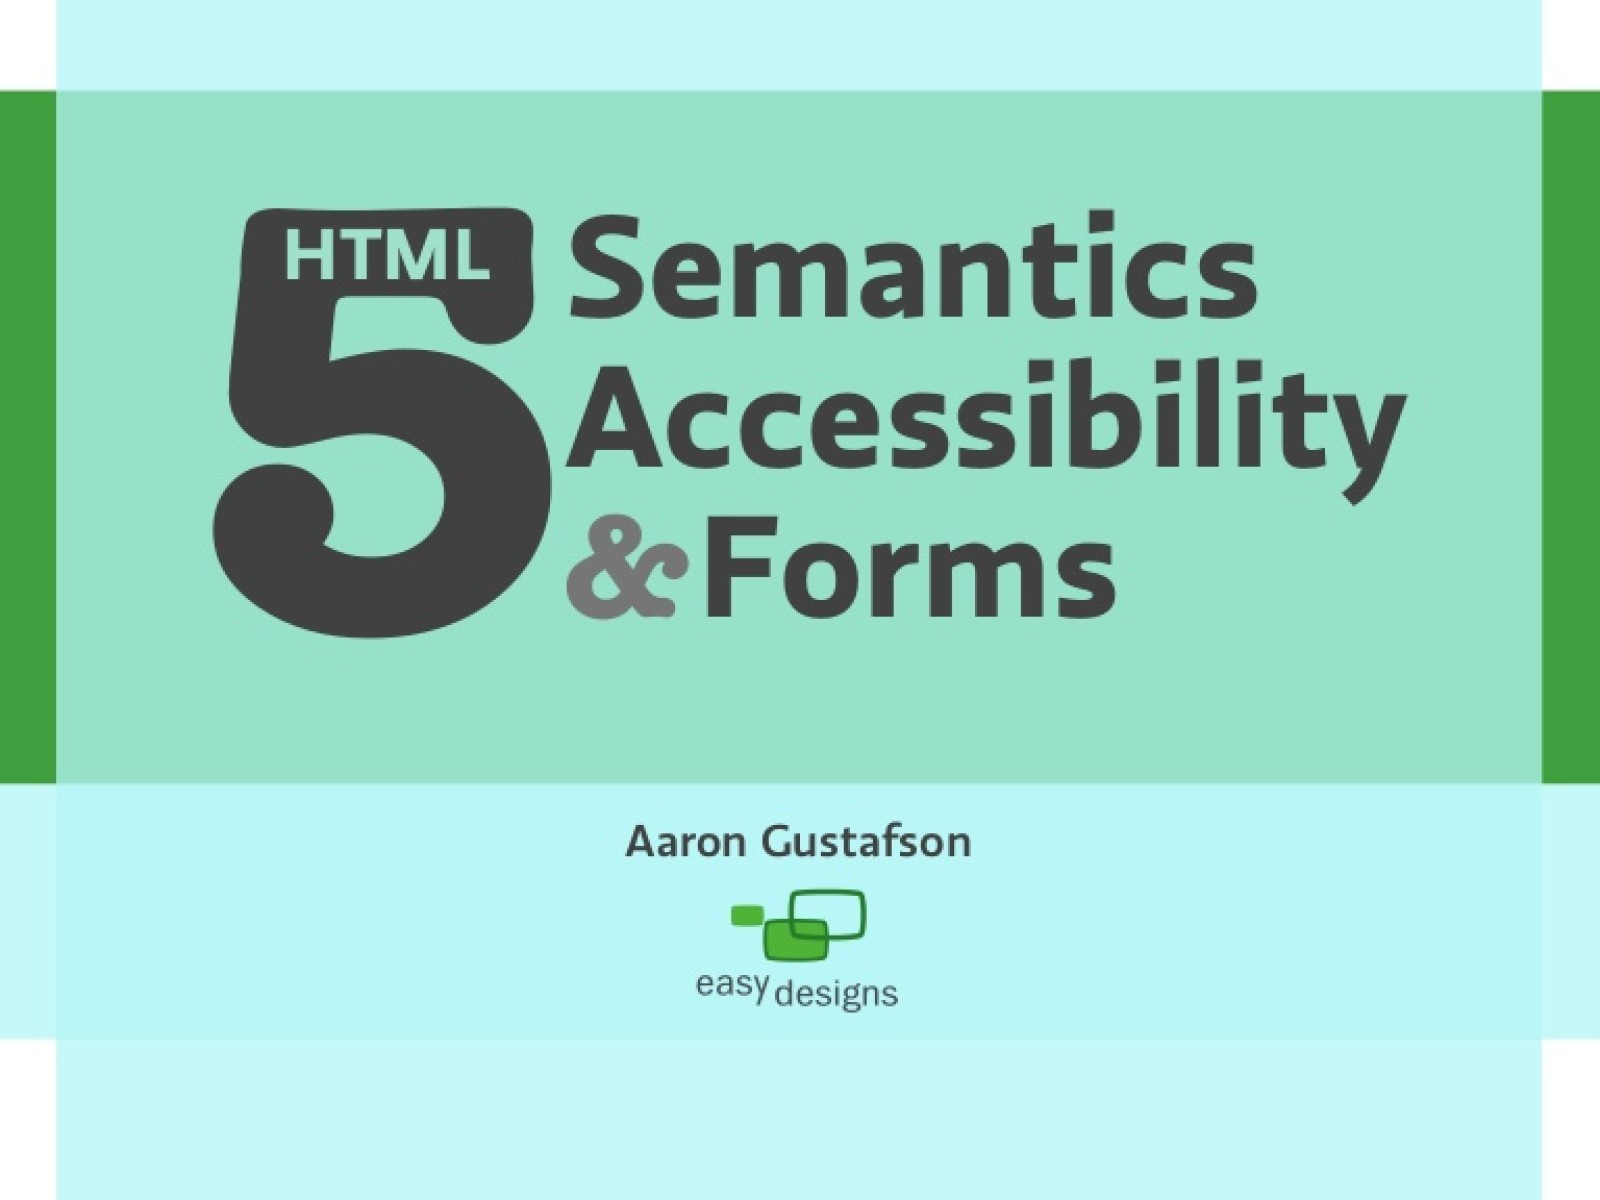 HTML5 Semantics, Accessibility & Forms